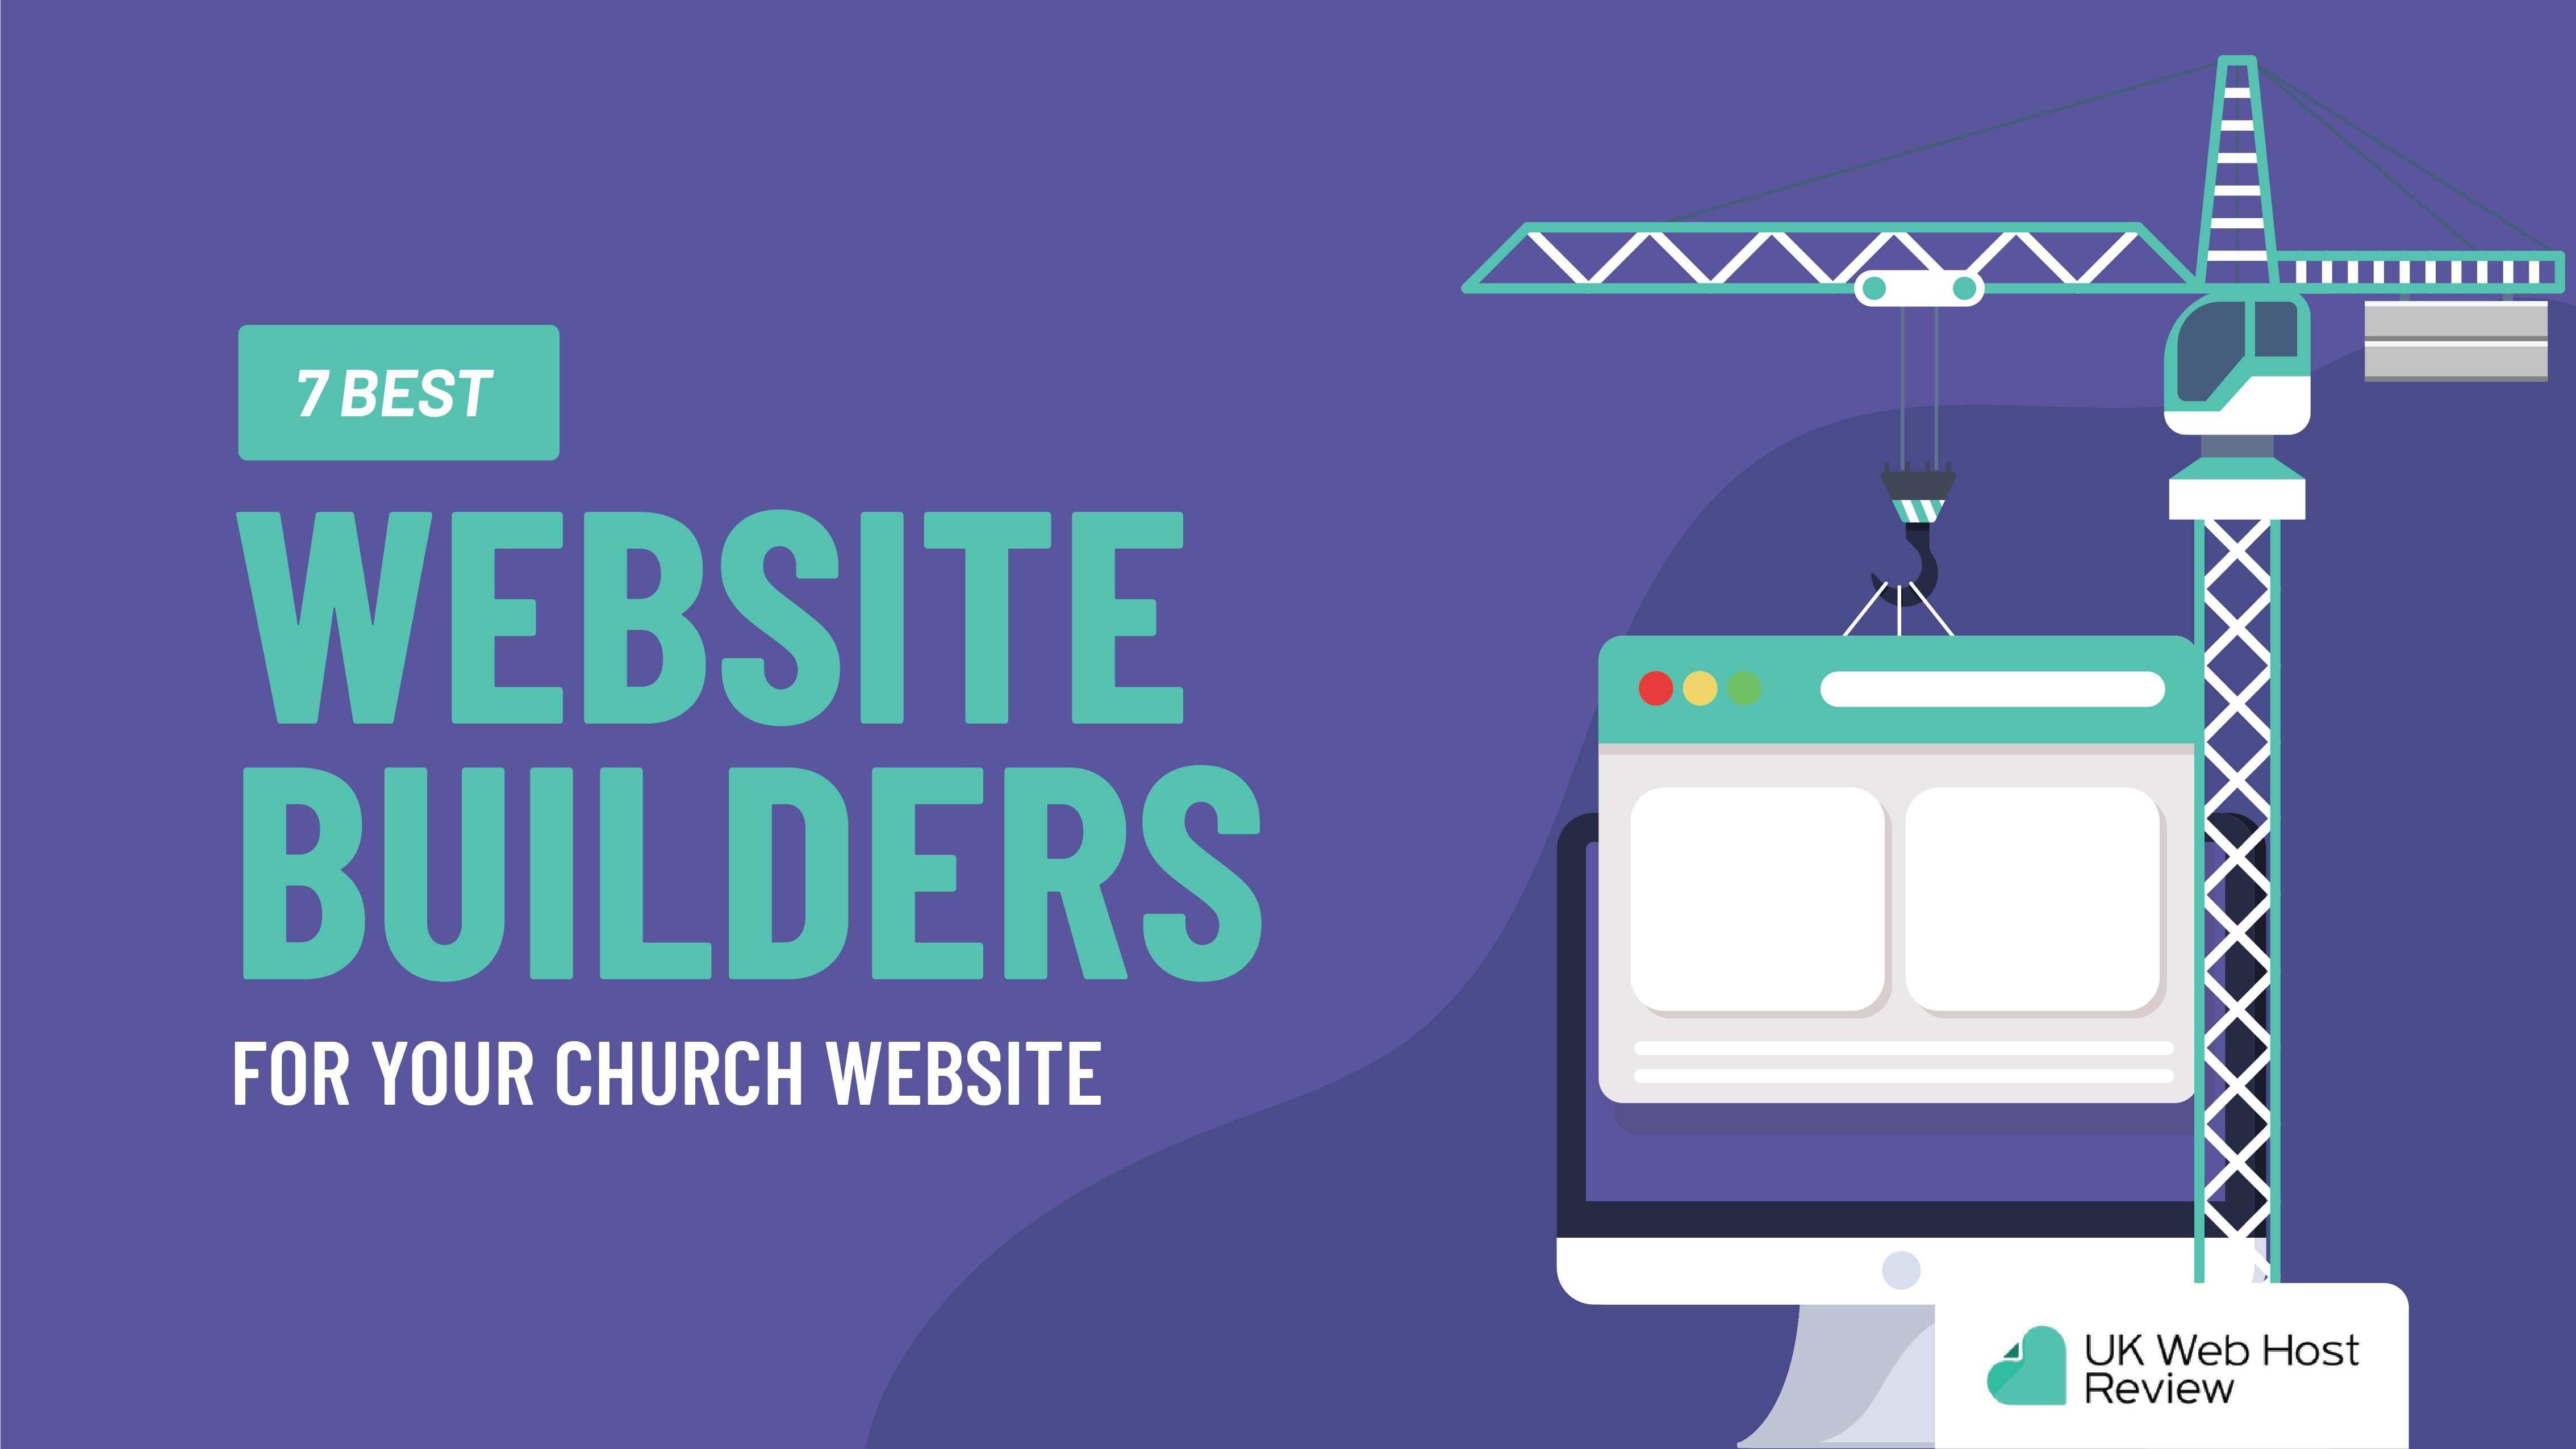 Church Website Builders Top 7 Review